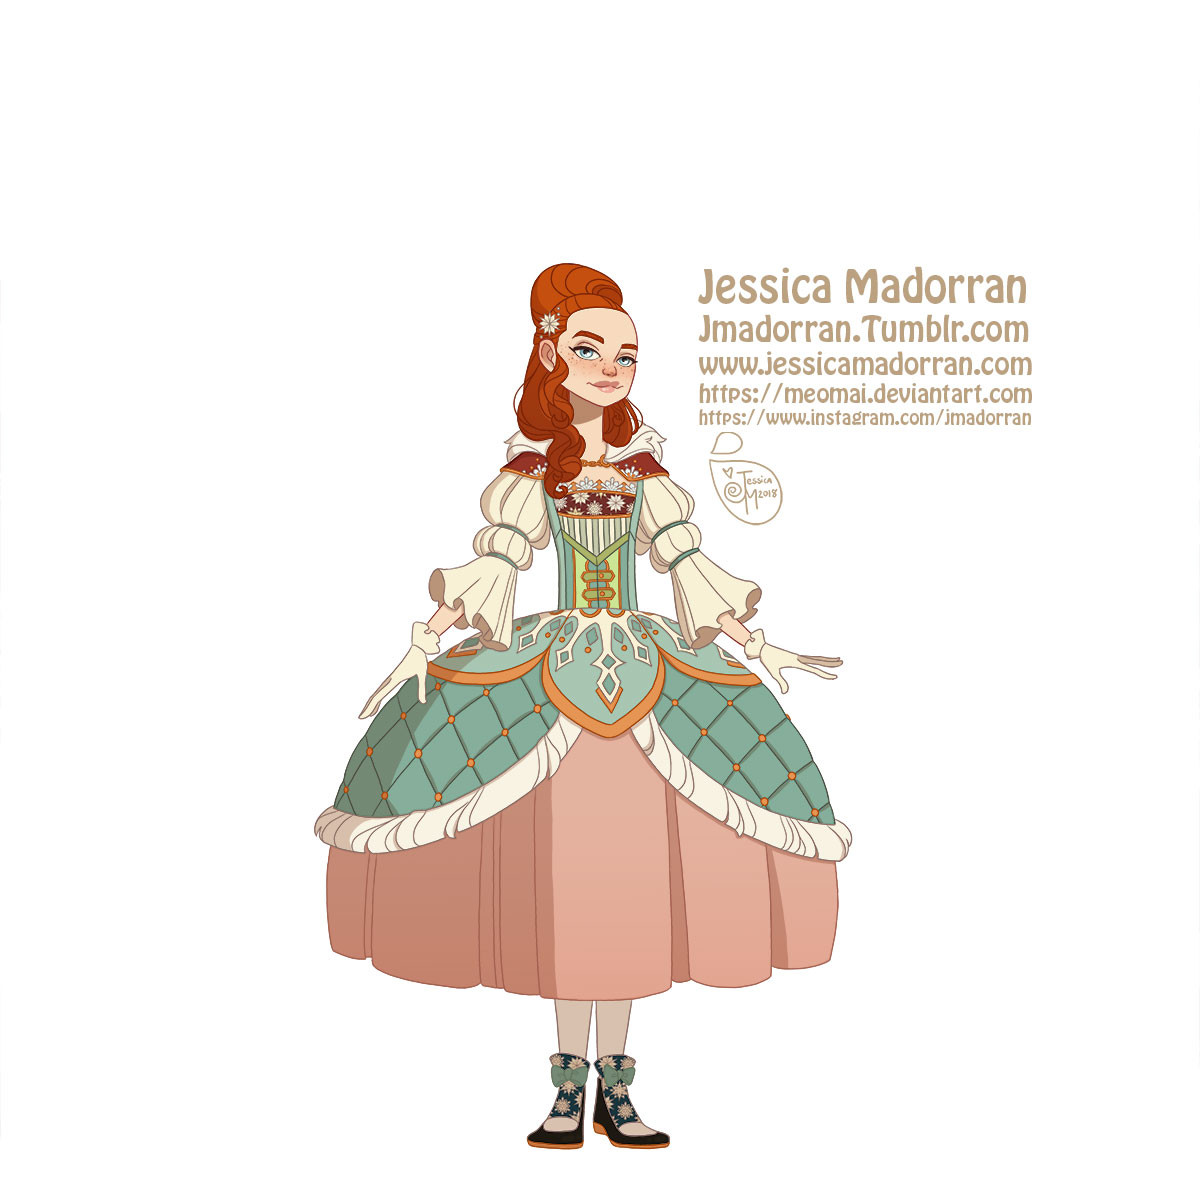 Jessica madorran character design paris 2018 versailles santa family individuals daughter01